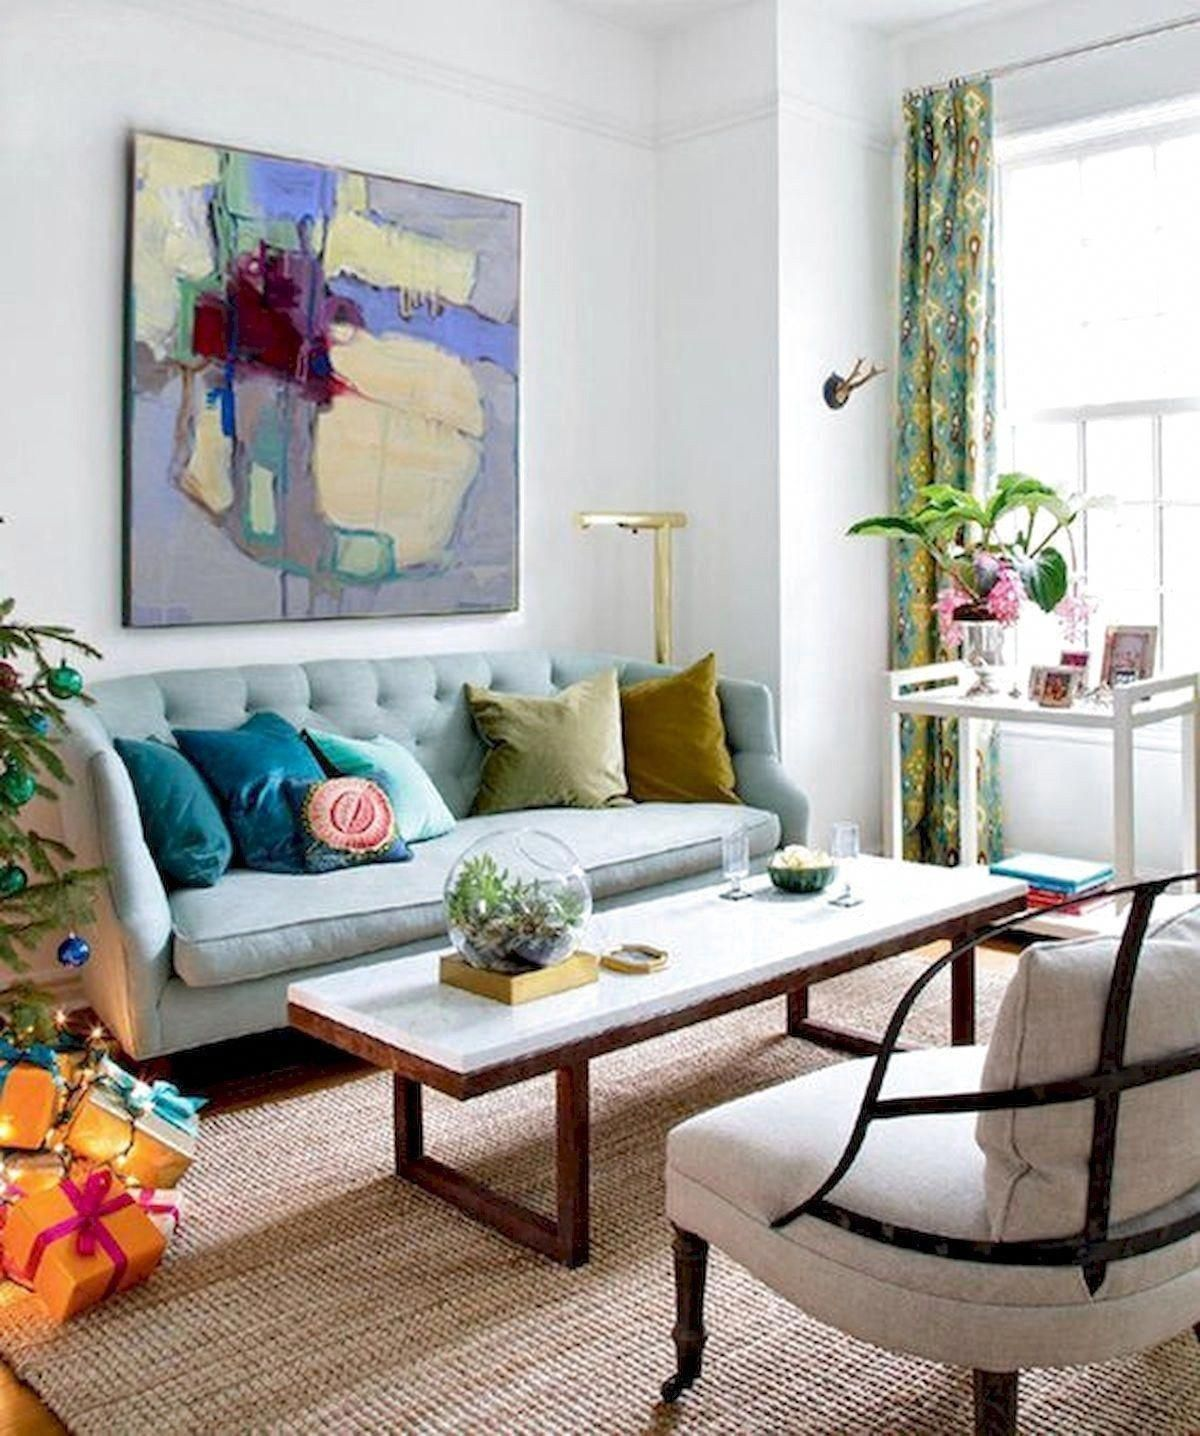 73 Eclectic Living Room Decor Ideas